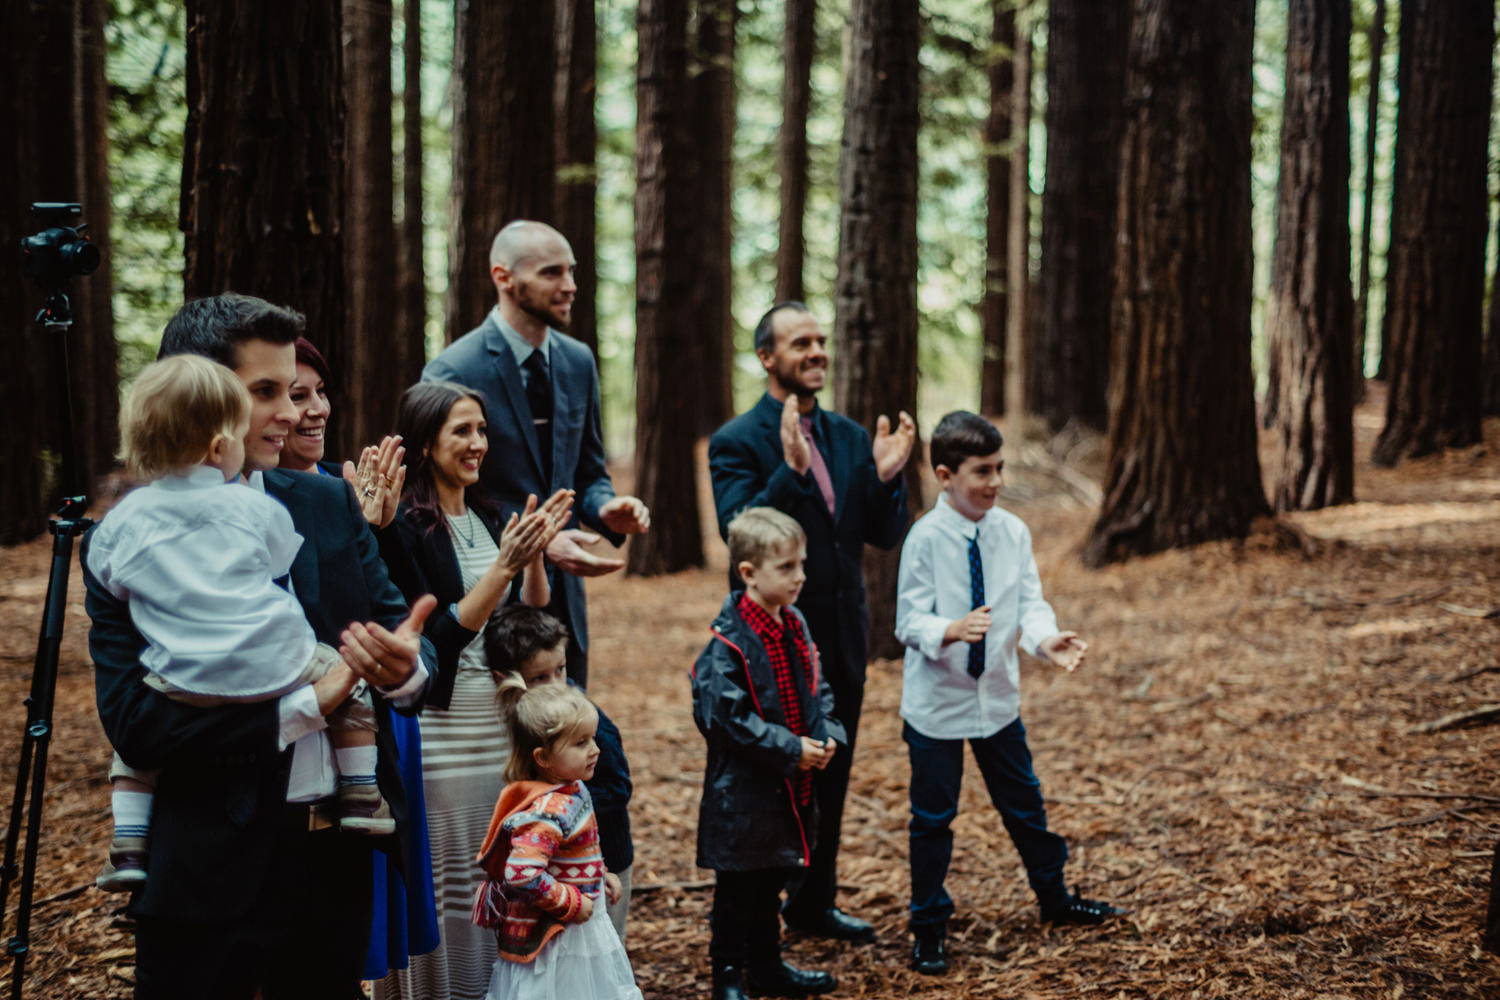 023-redwood-forest-warburton-wedding.jpg